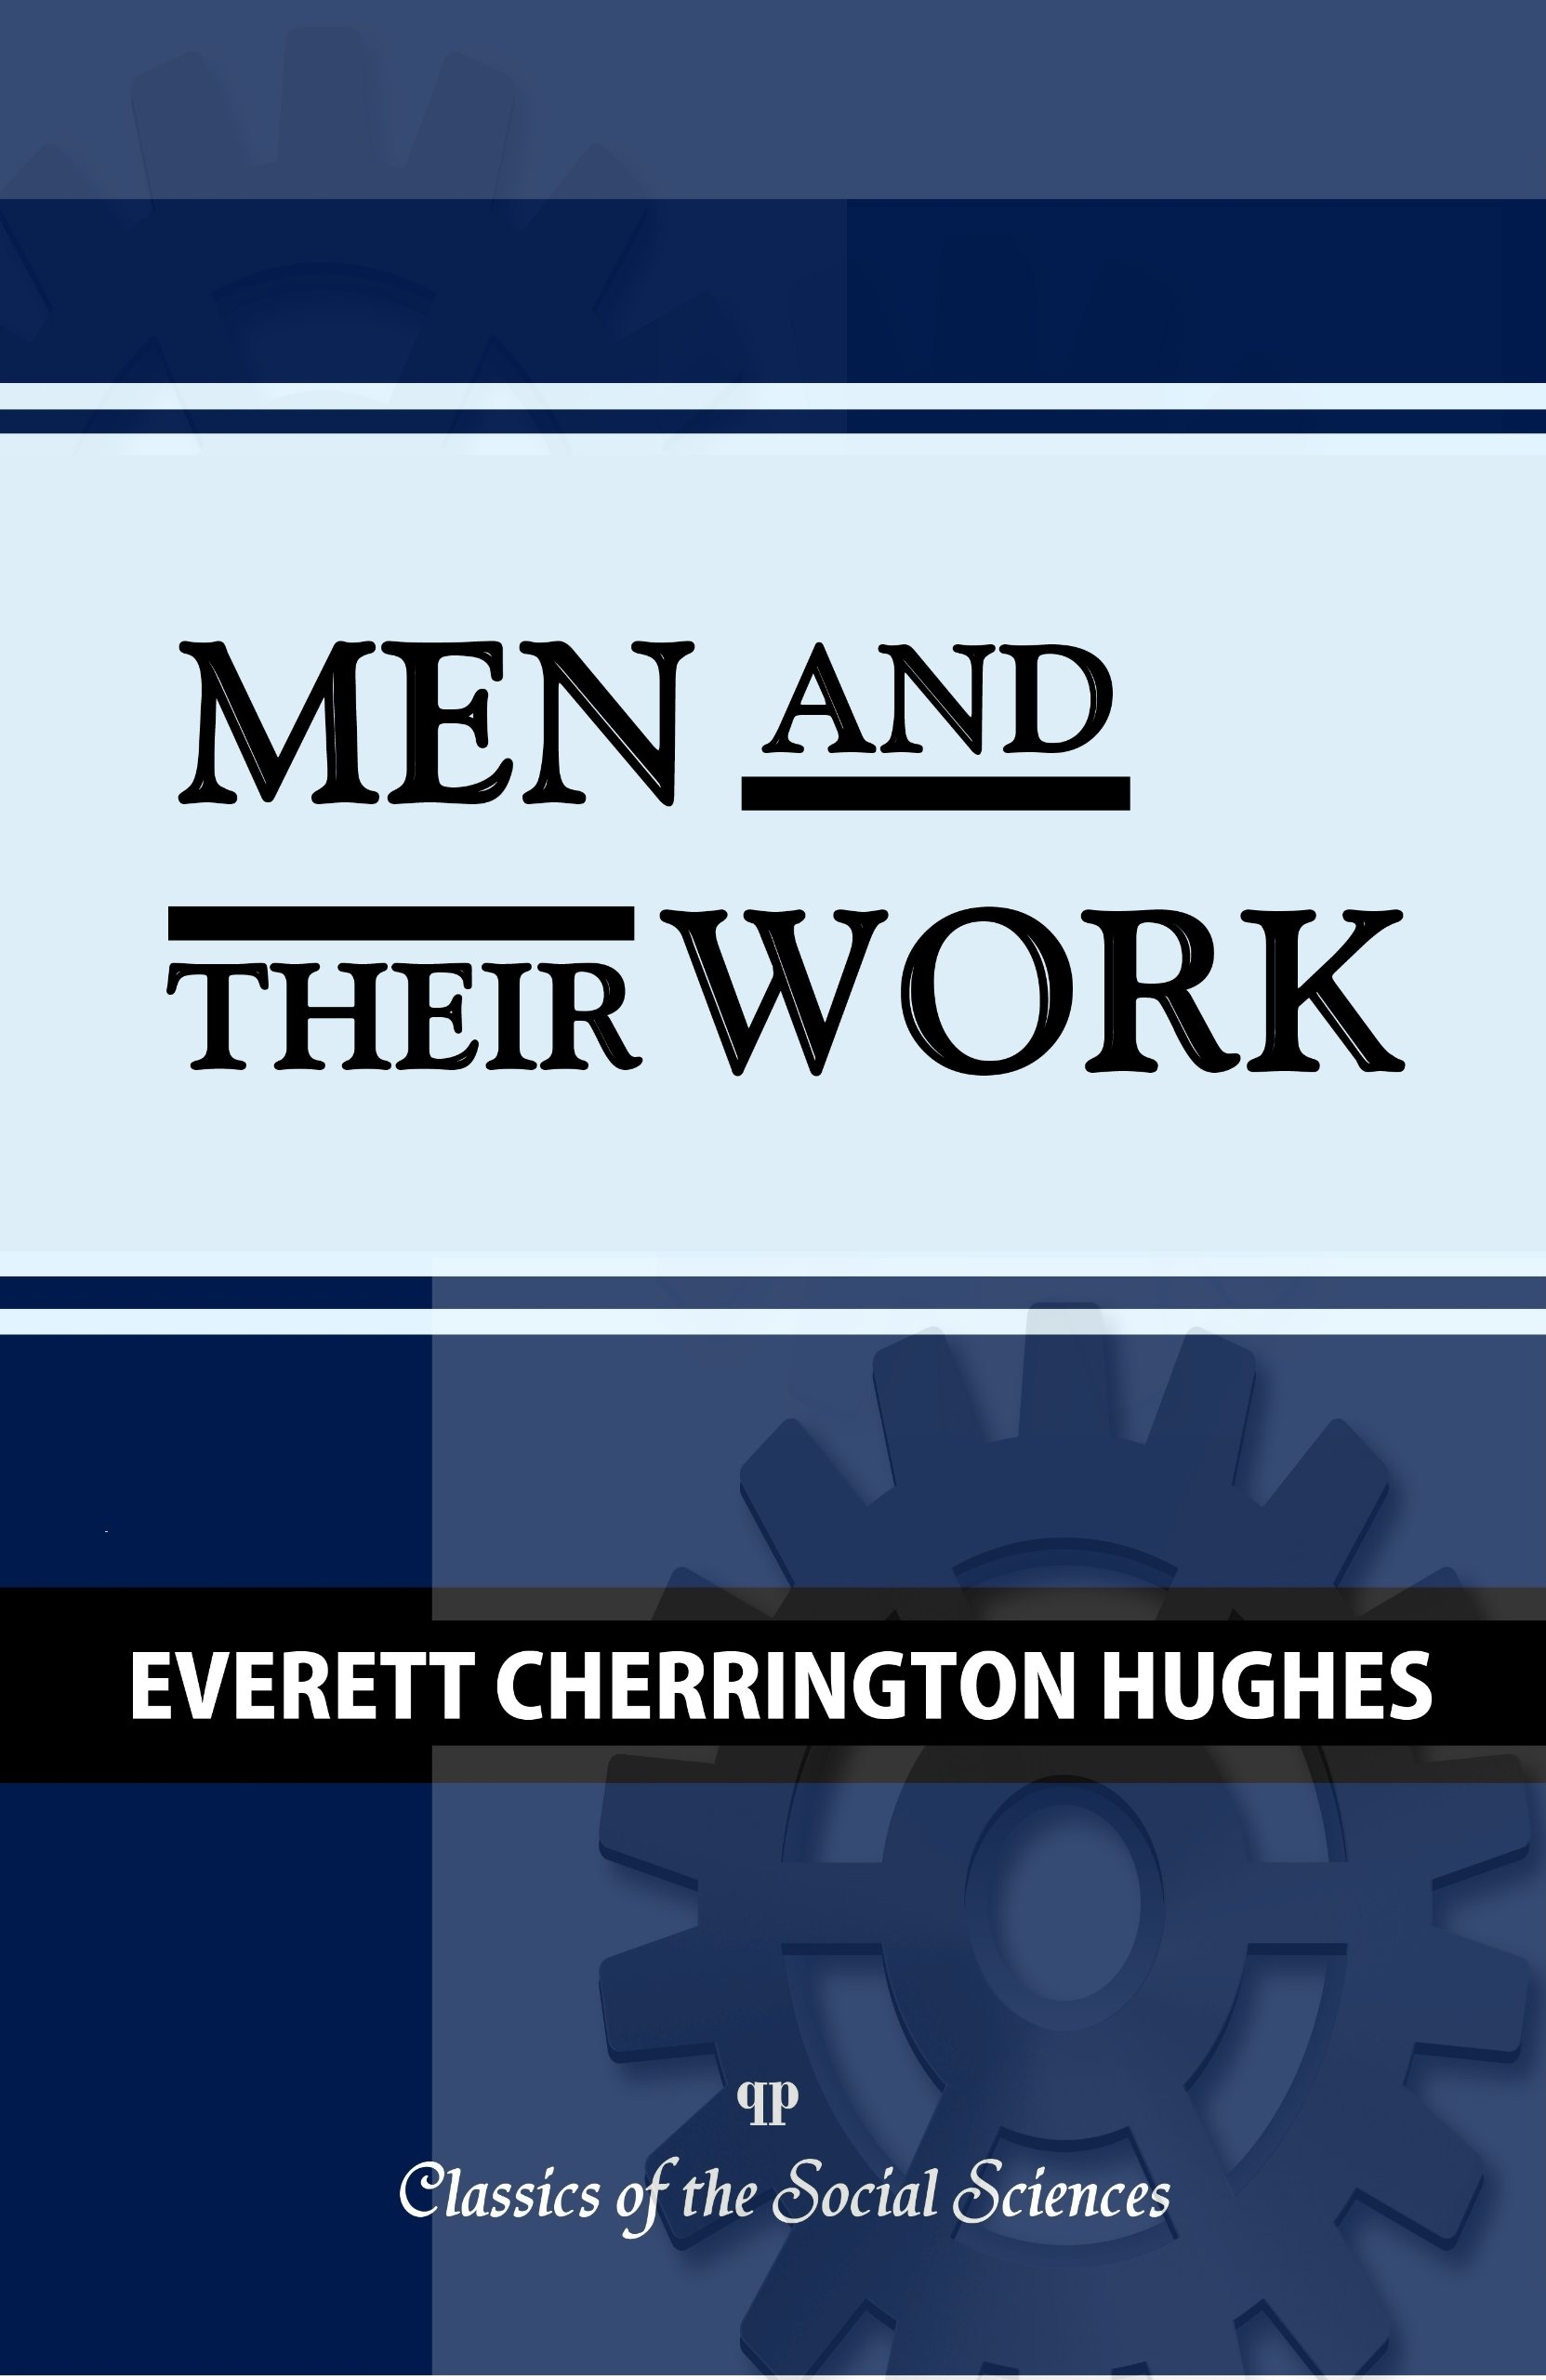 Men and Their Work (Classics of the Social Sciences)